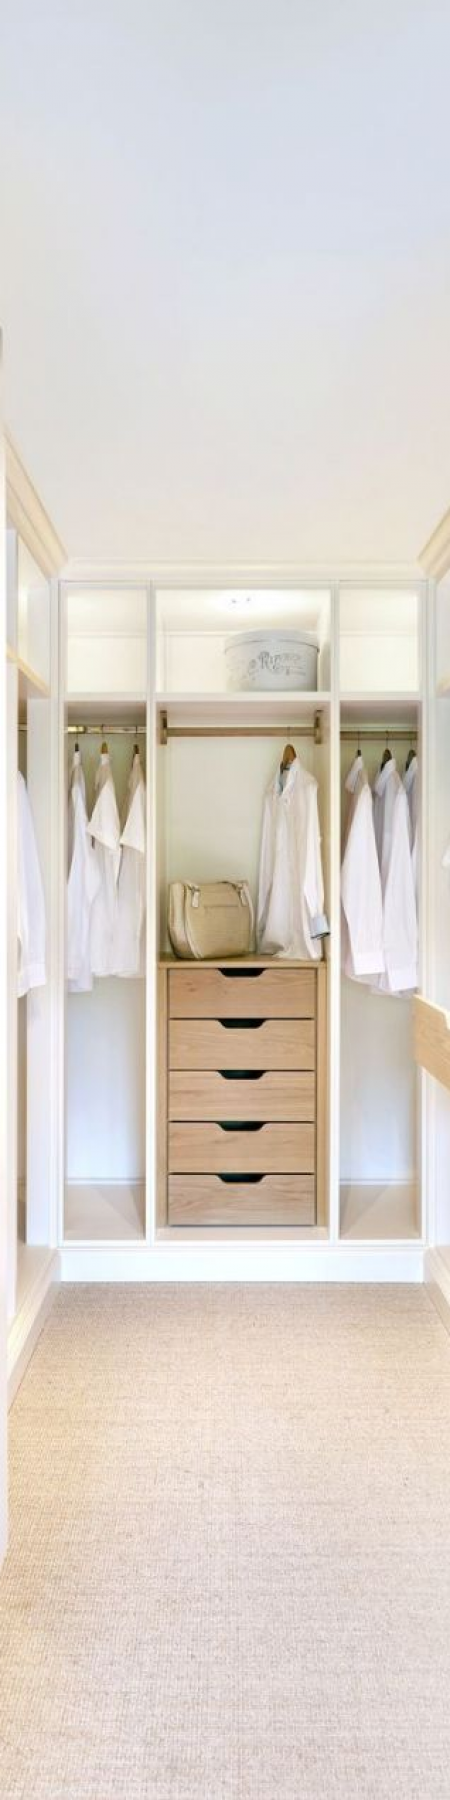 10 clever walk-in wardrobe ideas to help you create your dream closet